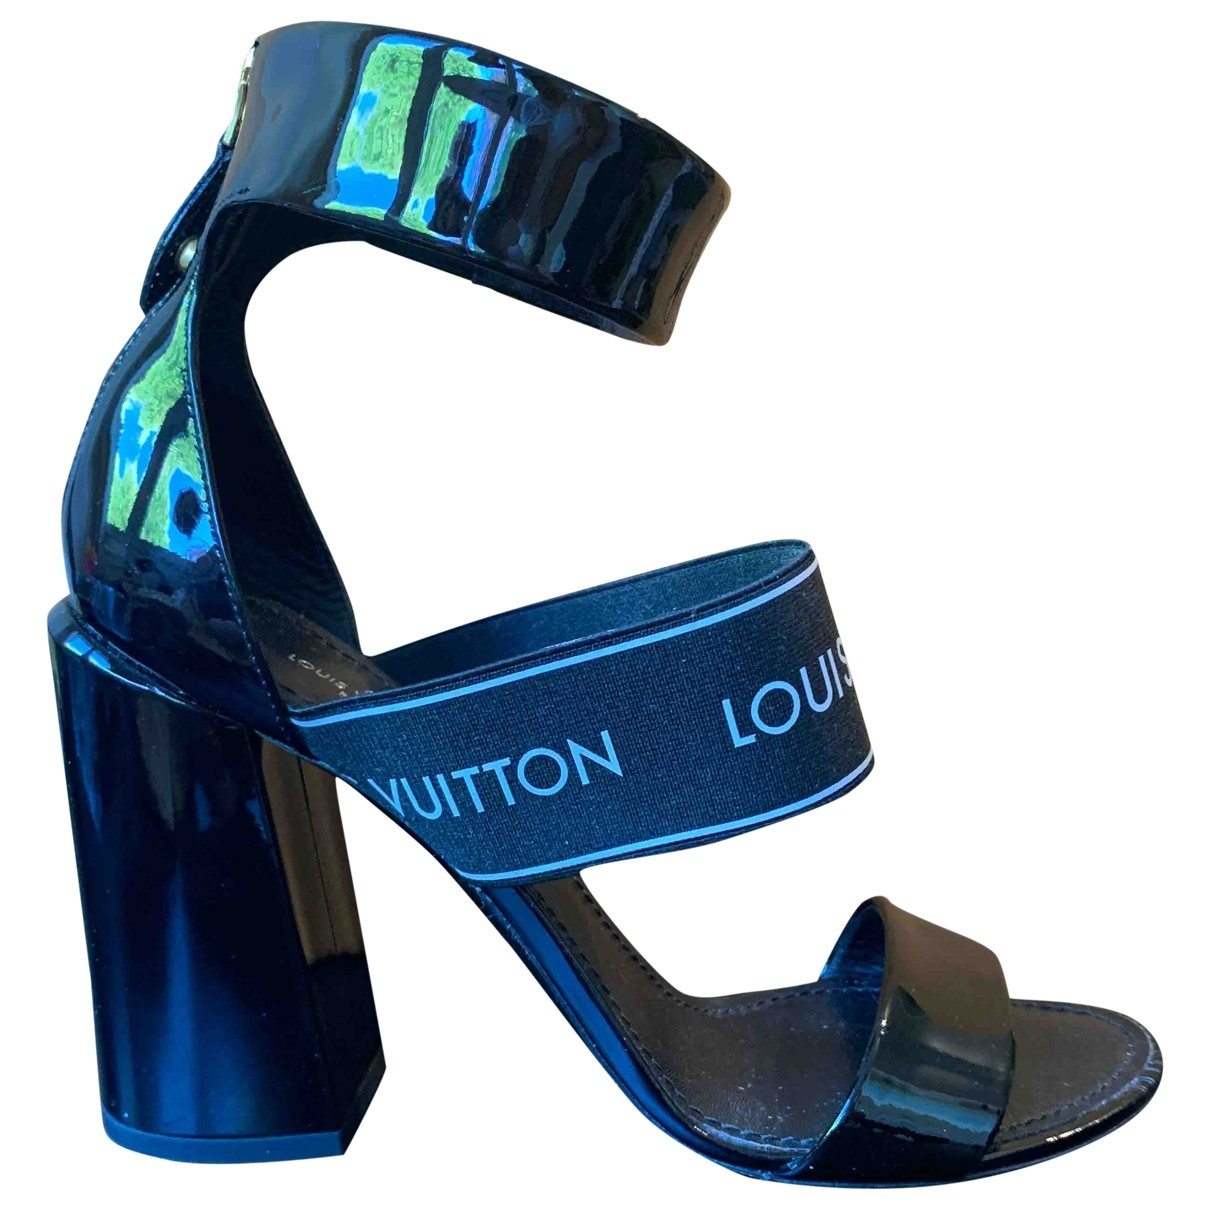 Louis Vuitton \N Black Patent leather Sandals for Women 39 EU